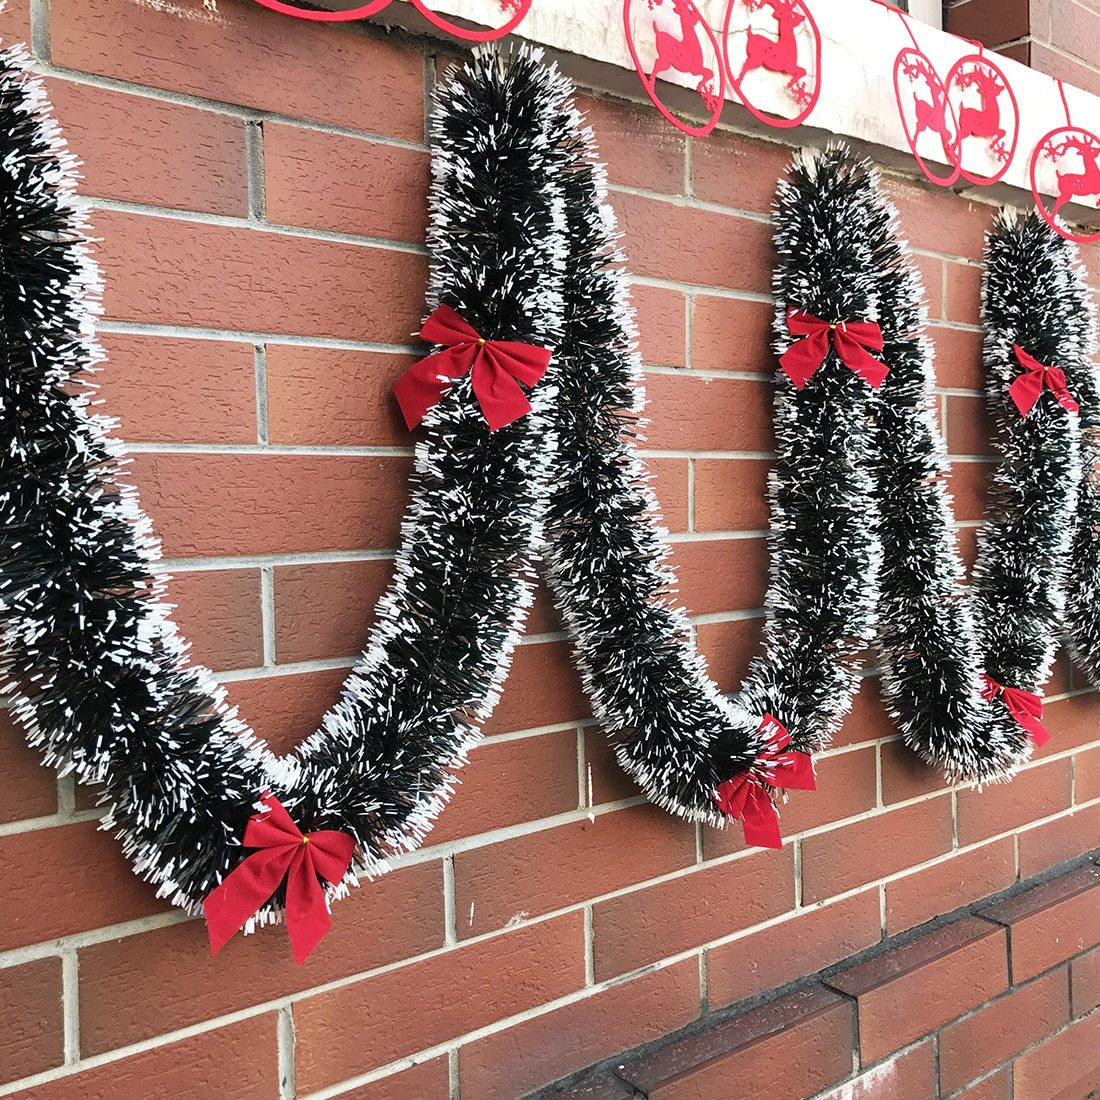 Details About Decorative 6 Foot Christmas Ribbon Garland